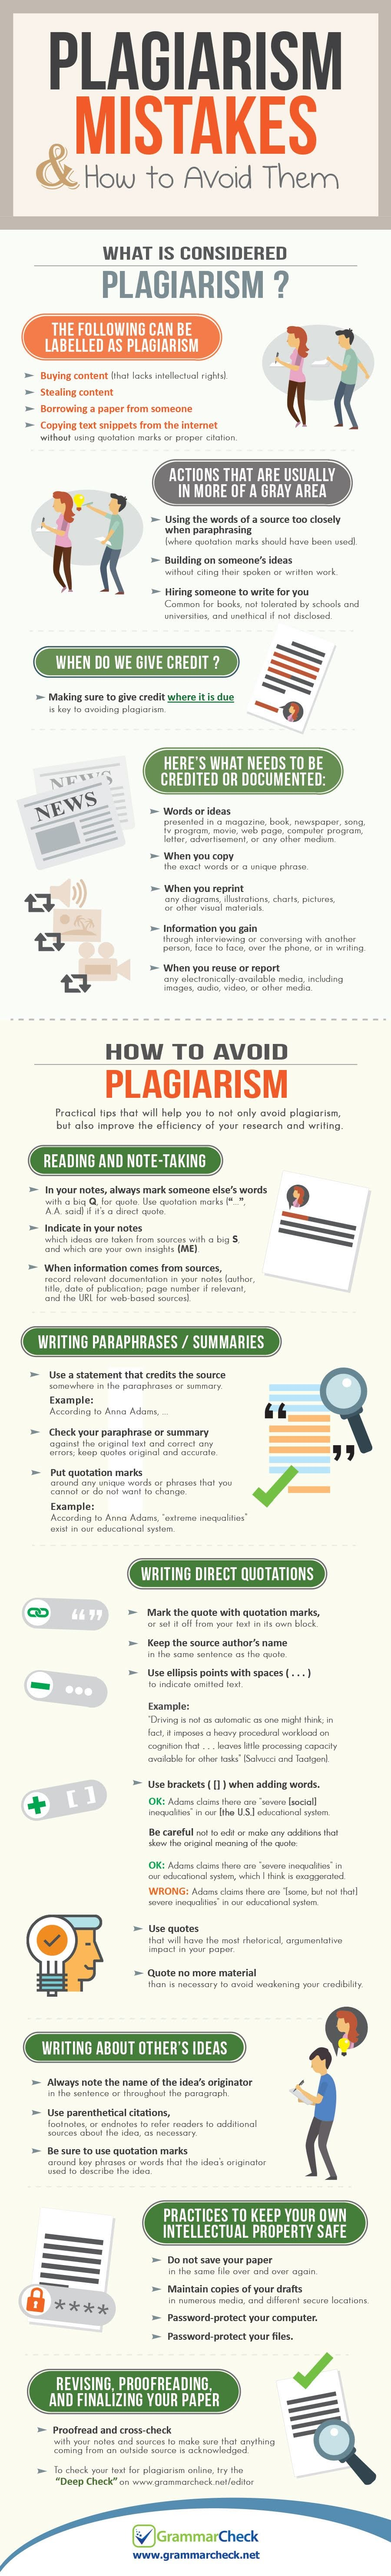 Plagiarism Mistakes And How to Avoid Them